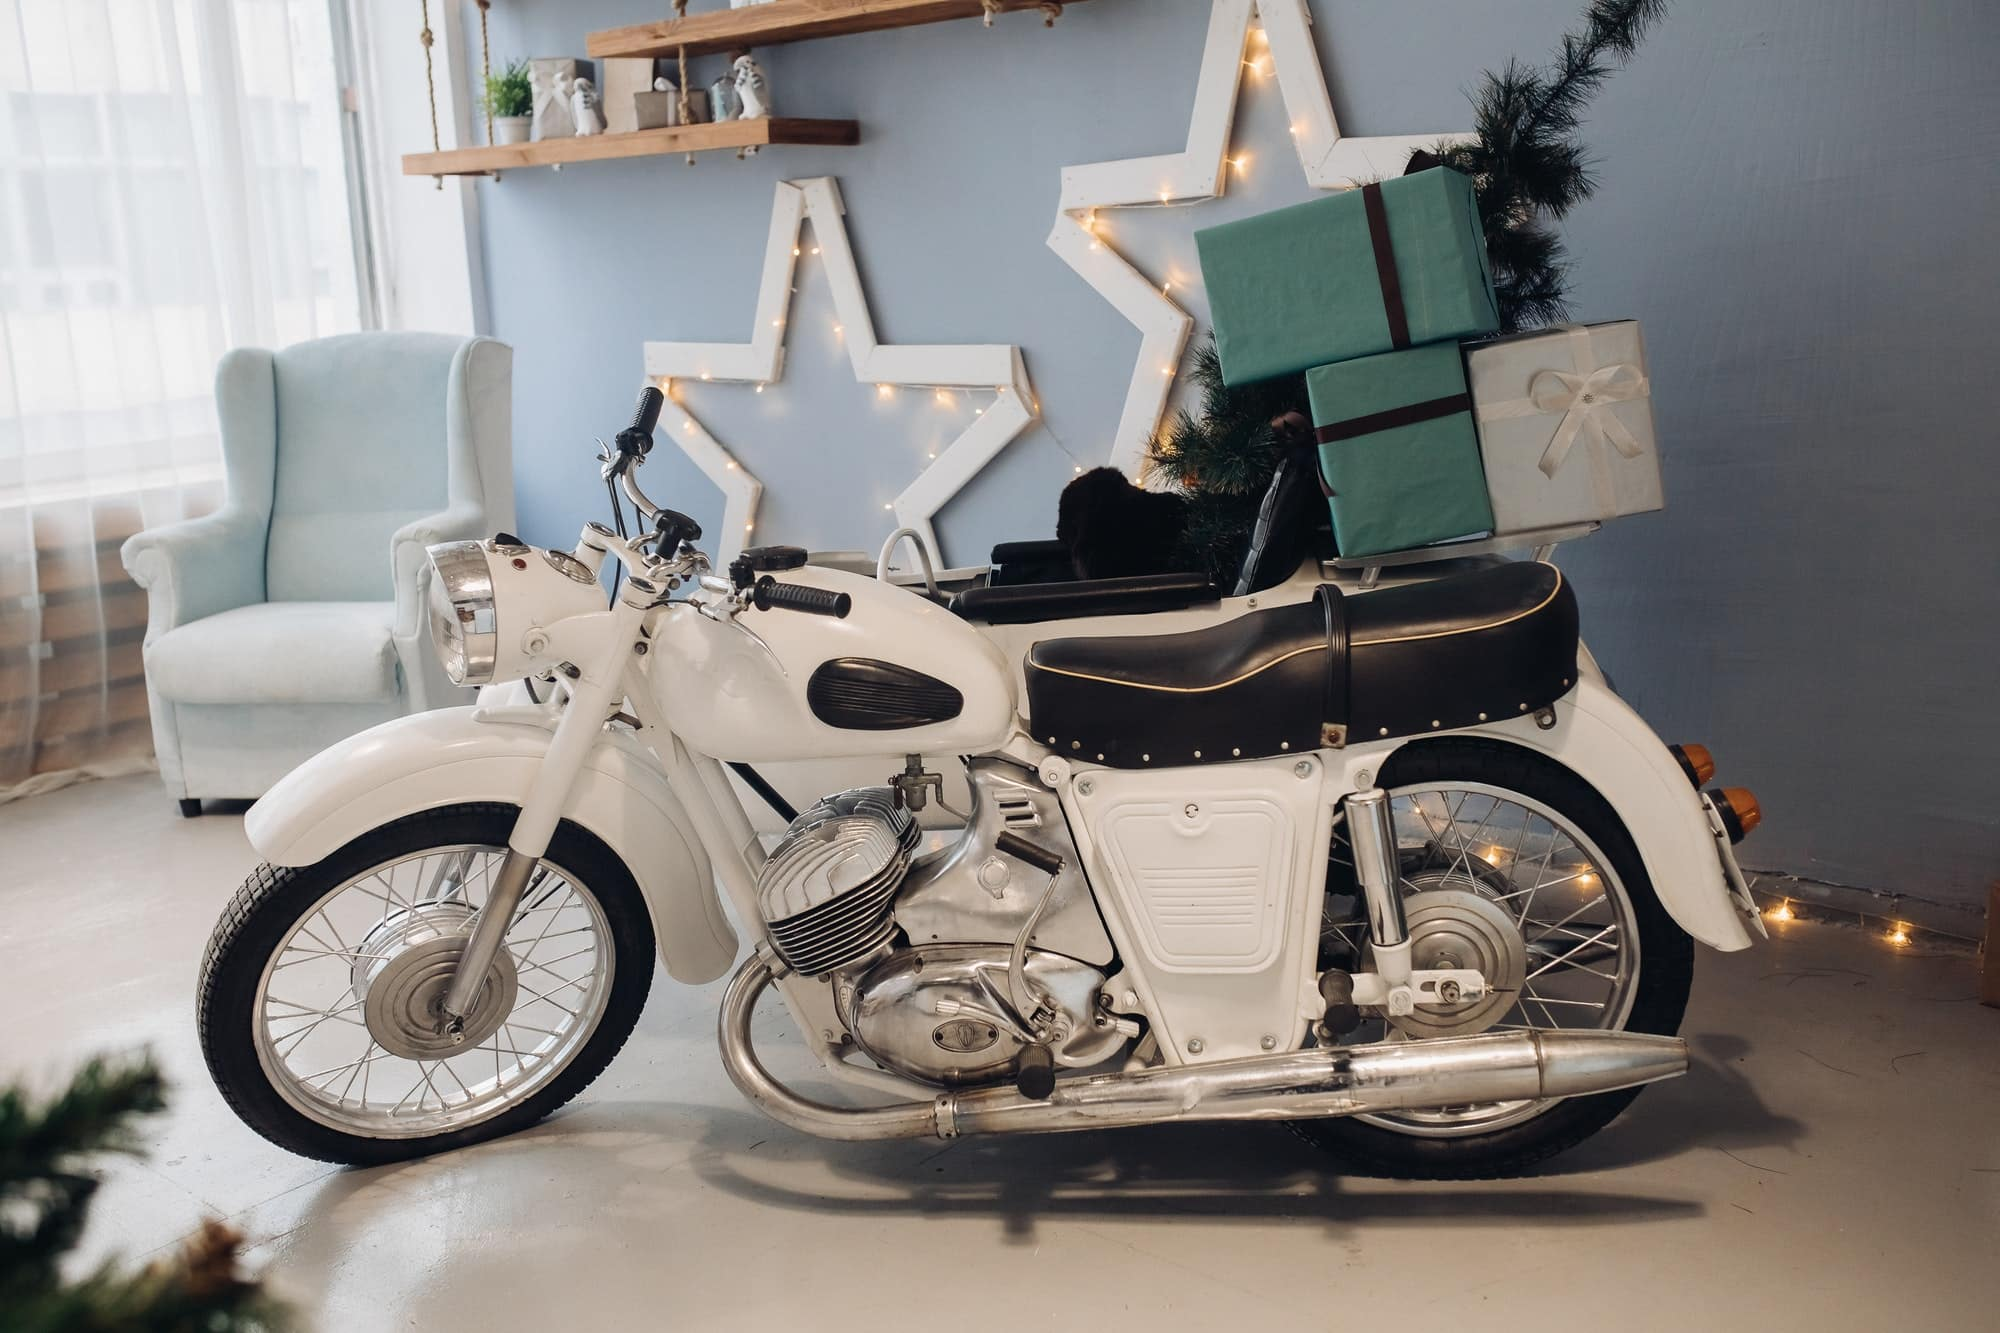 Cool retro motorcycle with Christmas presents. Motorcycle with gifts in decorated room